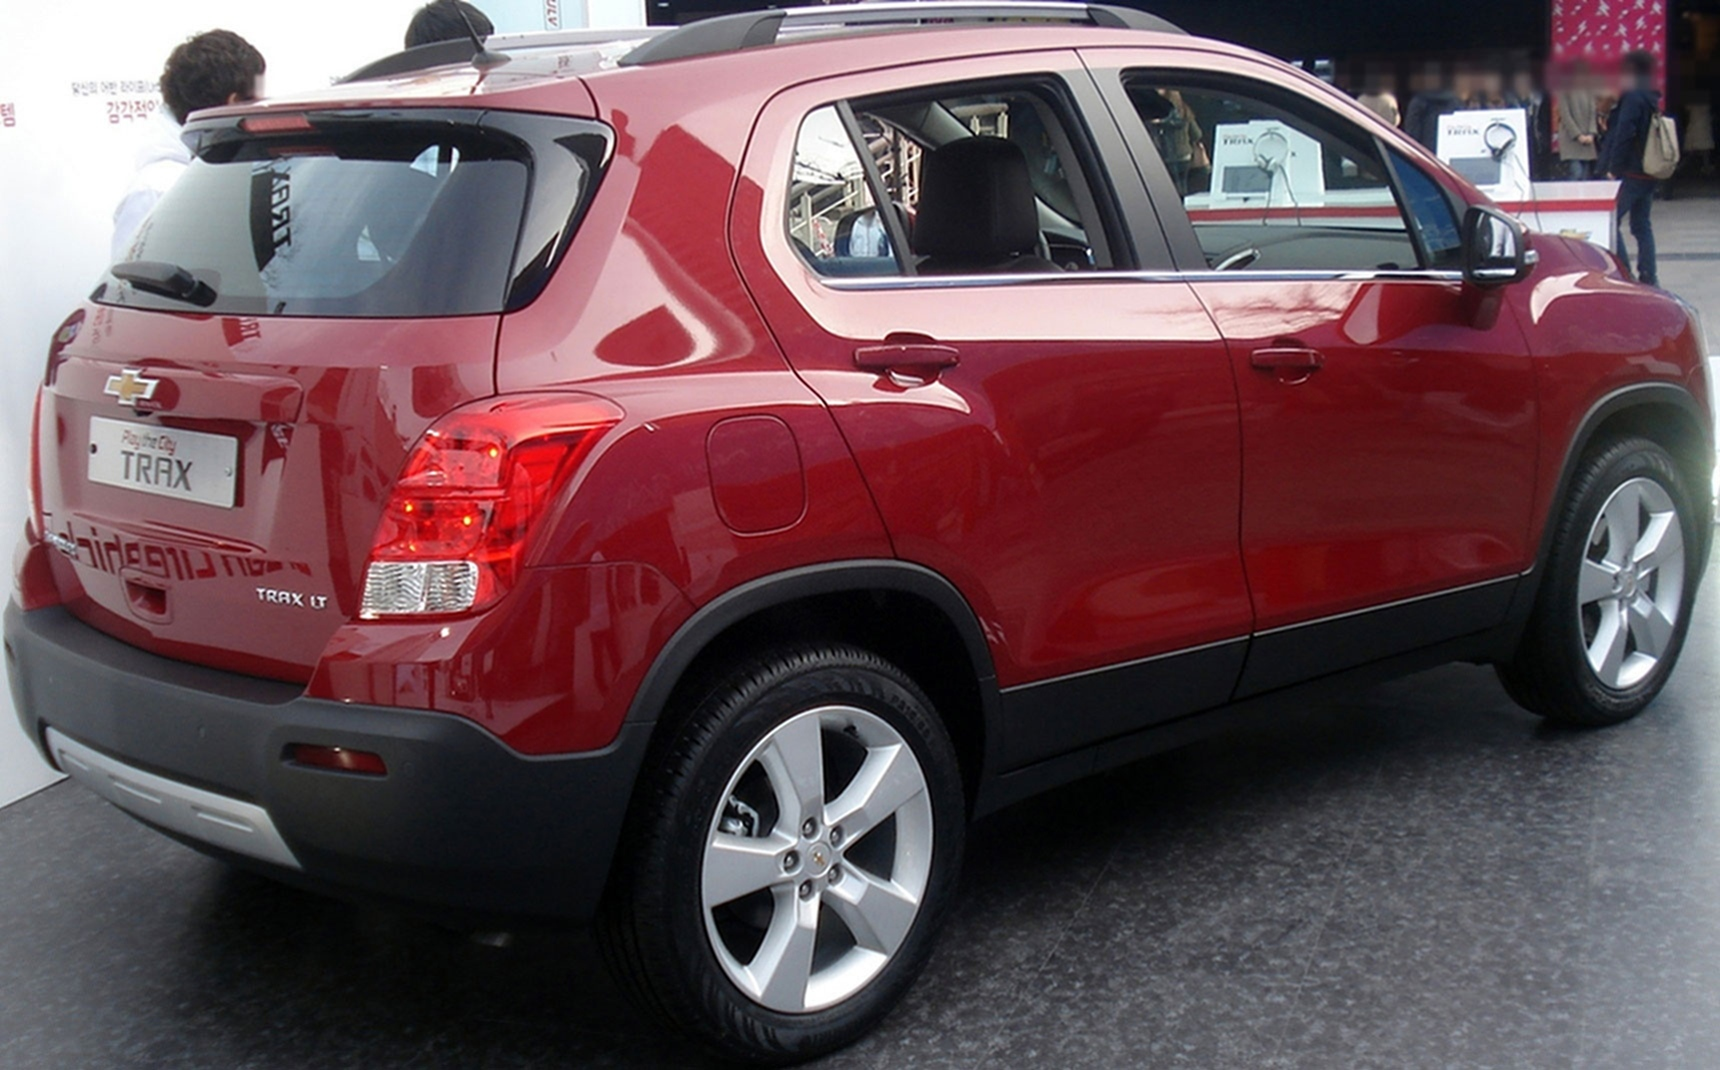 file 20130224 chevrolet trax wikimedia commons. Black Bedroom Furniture Sets. Home Design Ideas